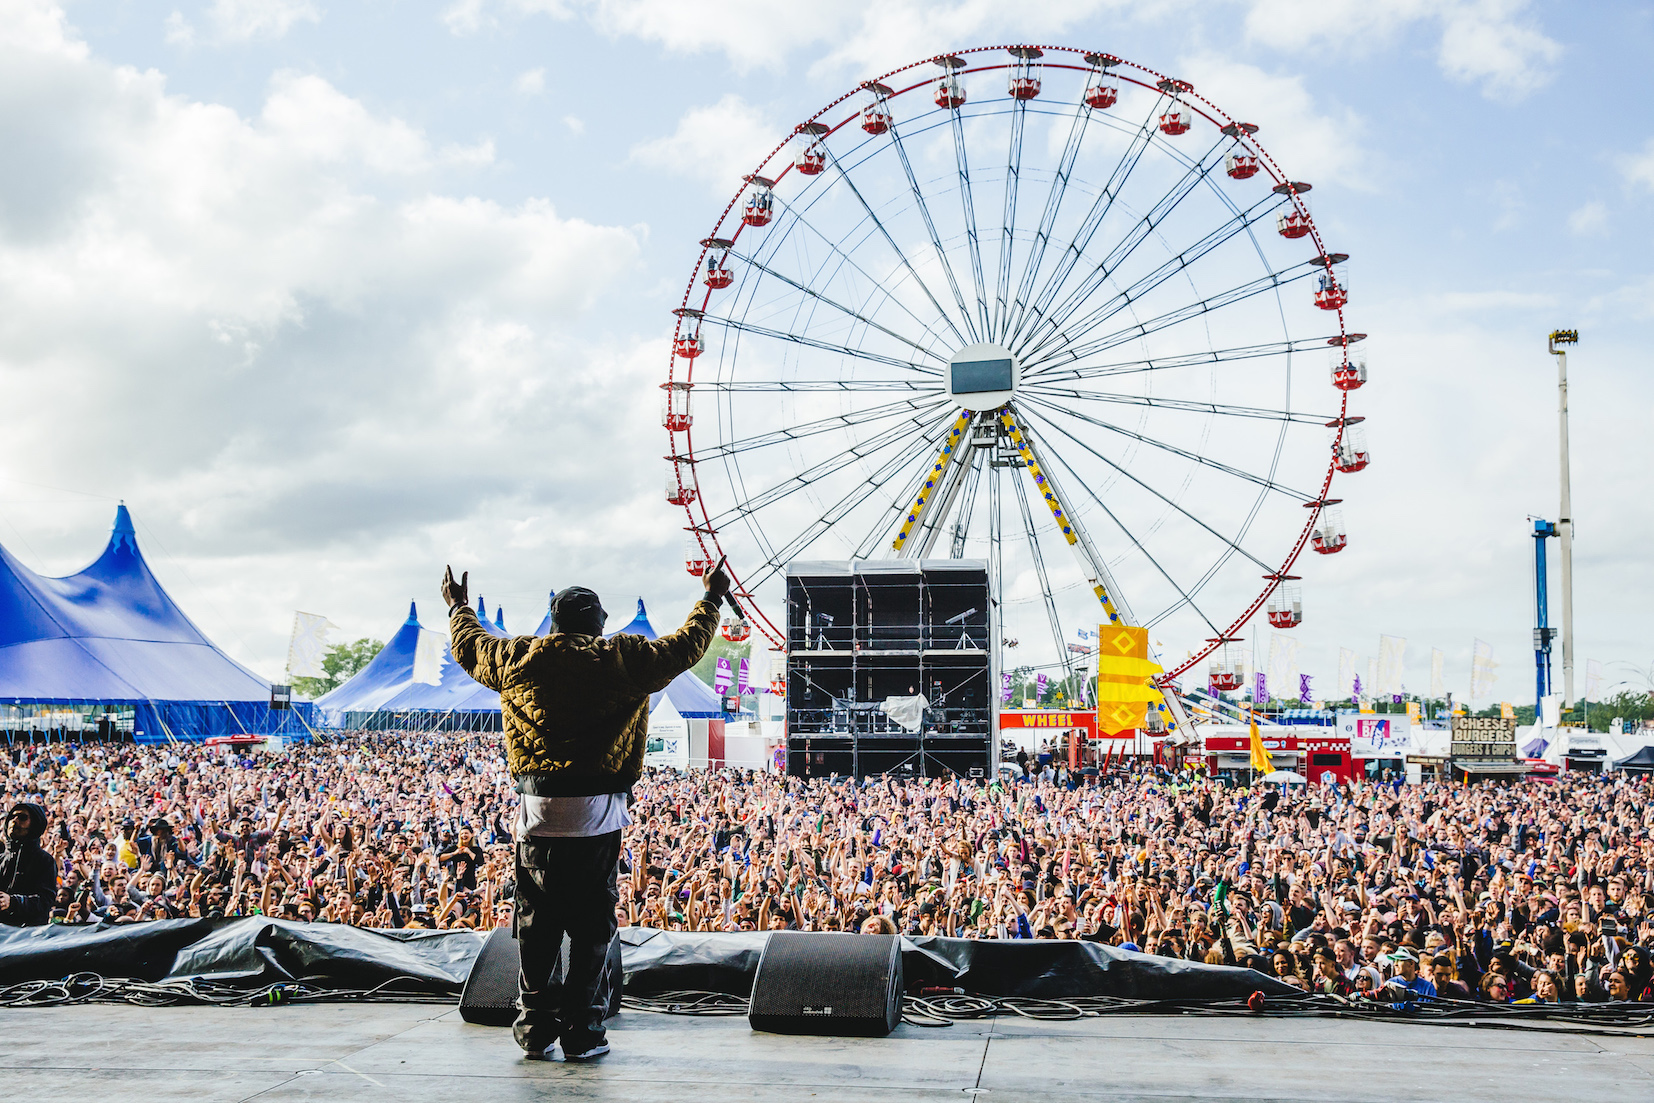 Andrew Whitton - Wu Tang Clan - Parklife 2015 - 11bb1f00-0c80-11e5-972d-aee5d44592c4 - Original